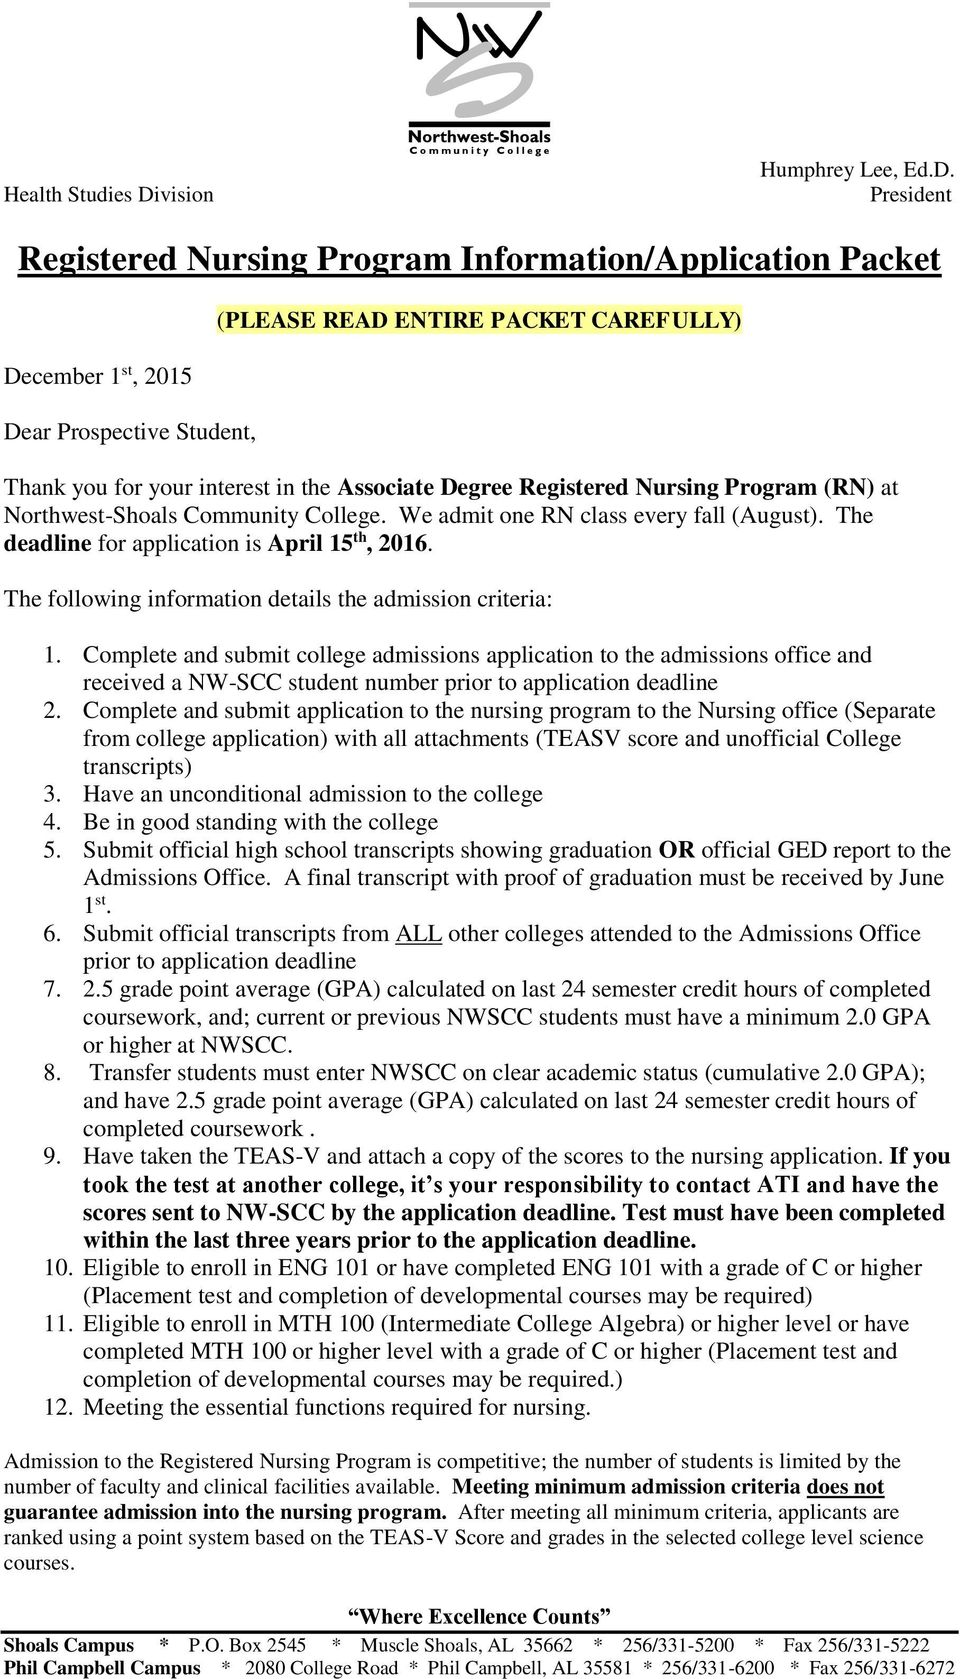 President Registered Nursing Program Information/Application Packet December 1 st, 2015 Dear Prospective Student, (PLEASE READ ENTIRE PACKET CAREFULLY) Thank you for your interest in the Associate